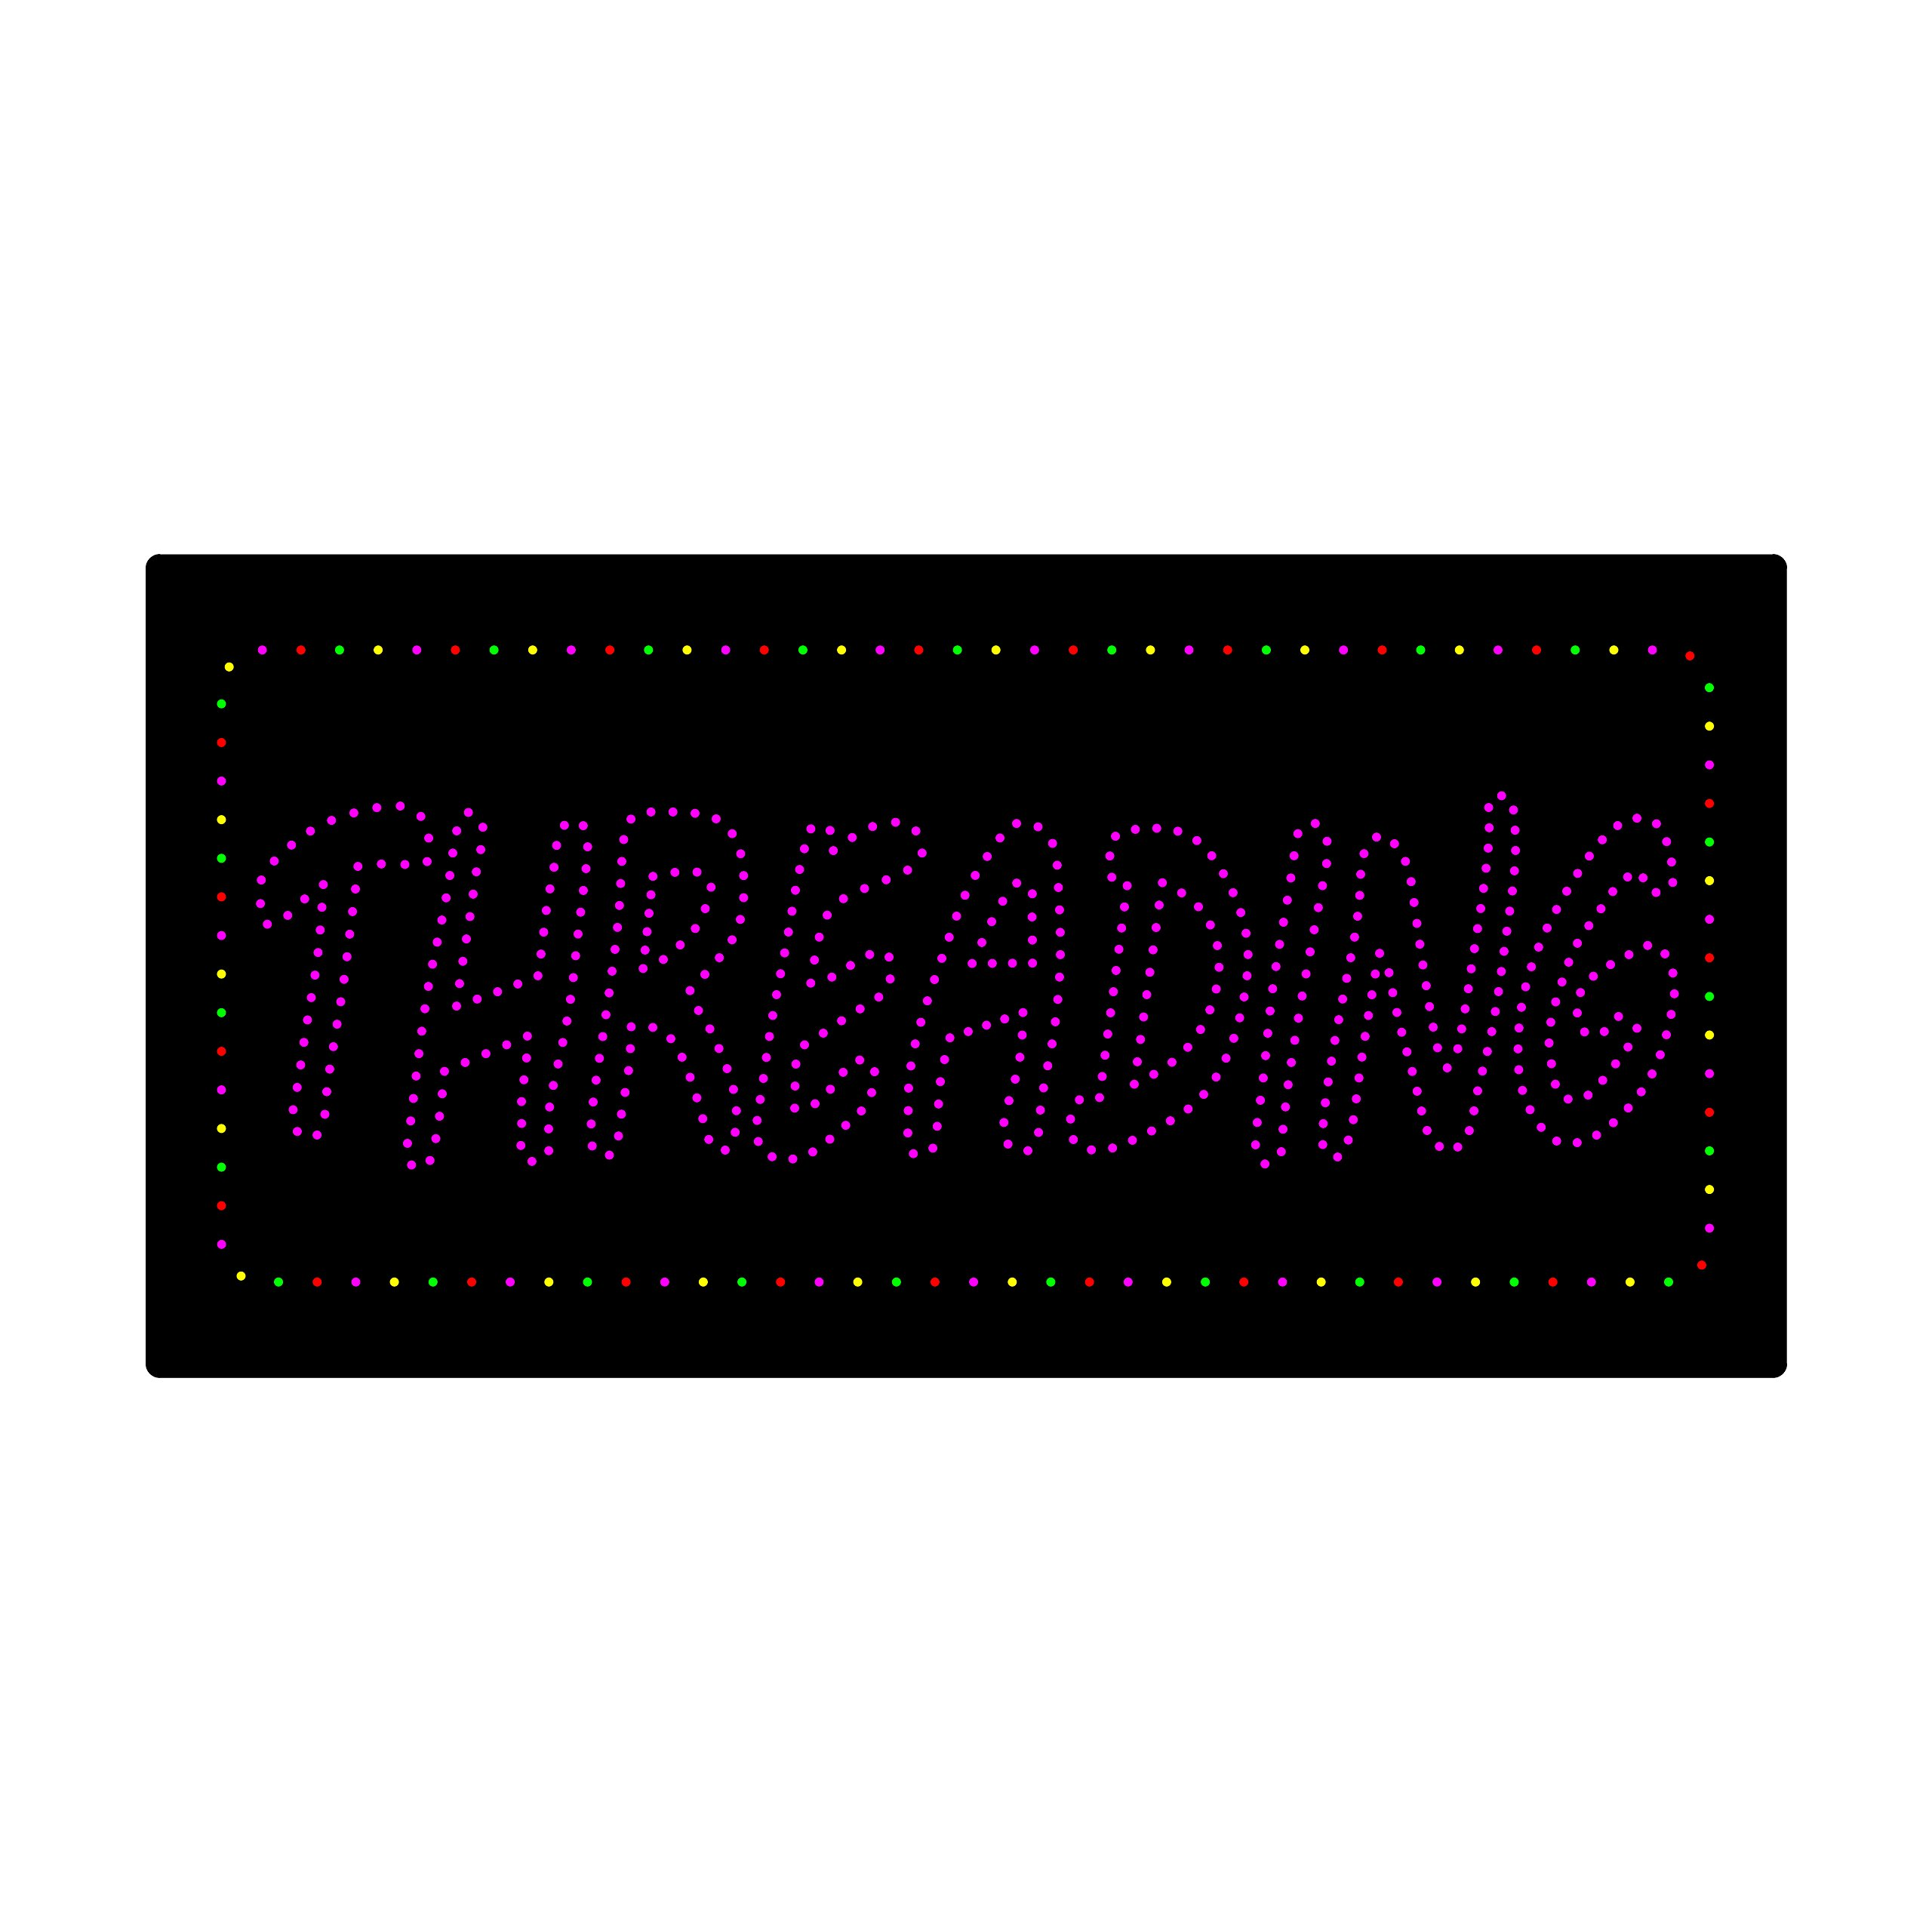 LED Treading Light Sign Super Bright Electric Advertising Display Board Eyebrow Facial Waxing Nails Spa Pedicure Message Business Shop Store Window Bedroom 24 x 12 inches